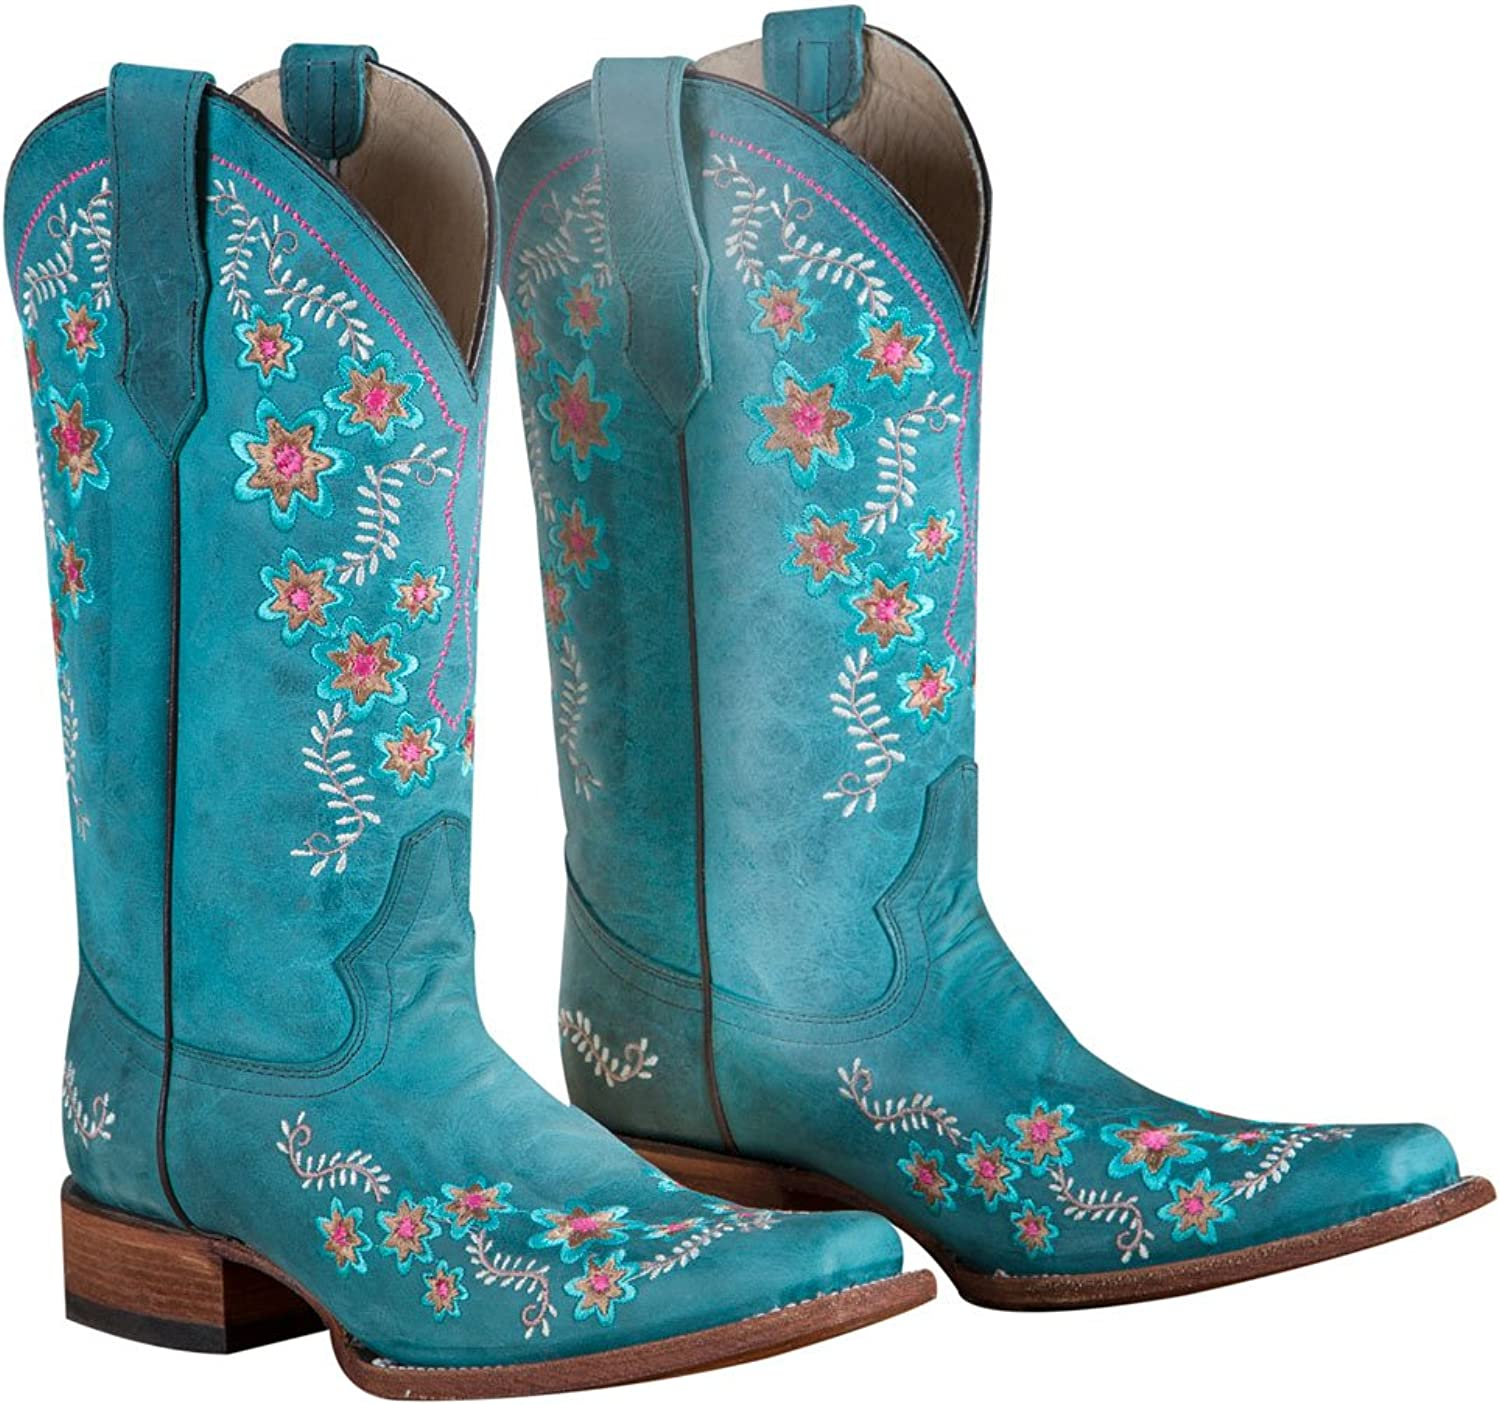 Circle G Turquoise Floral Embroidered Boots